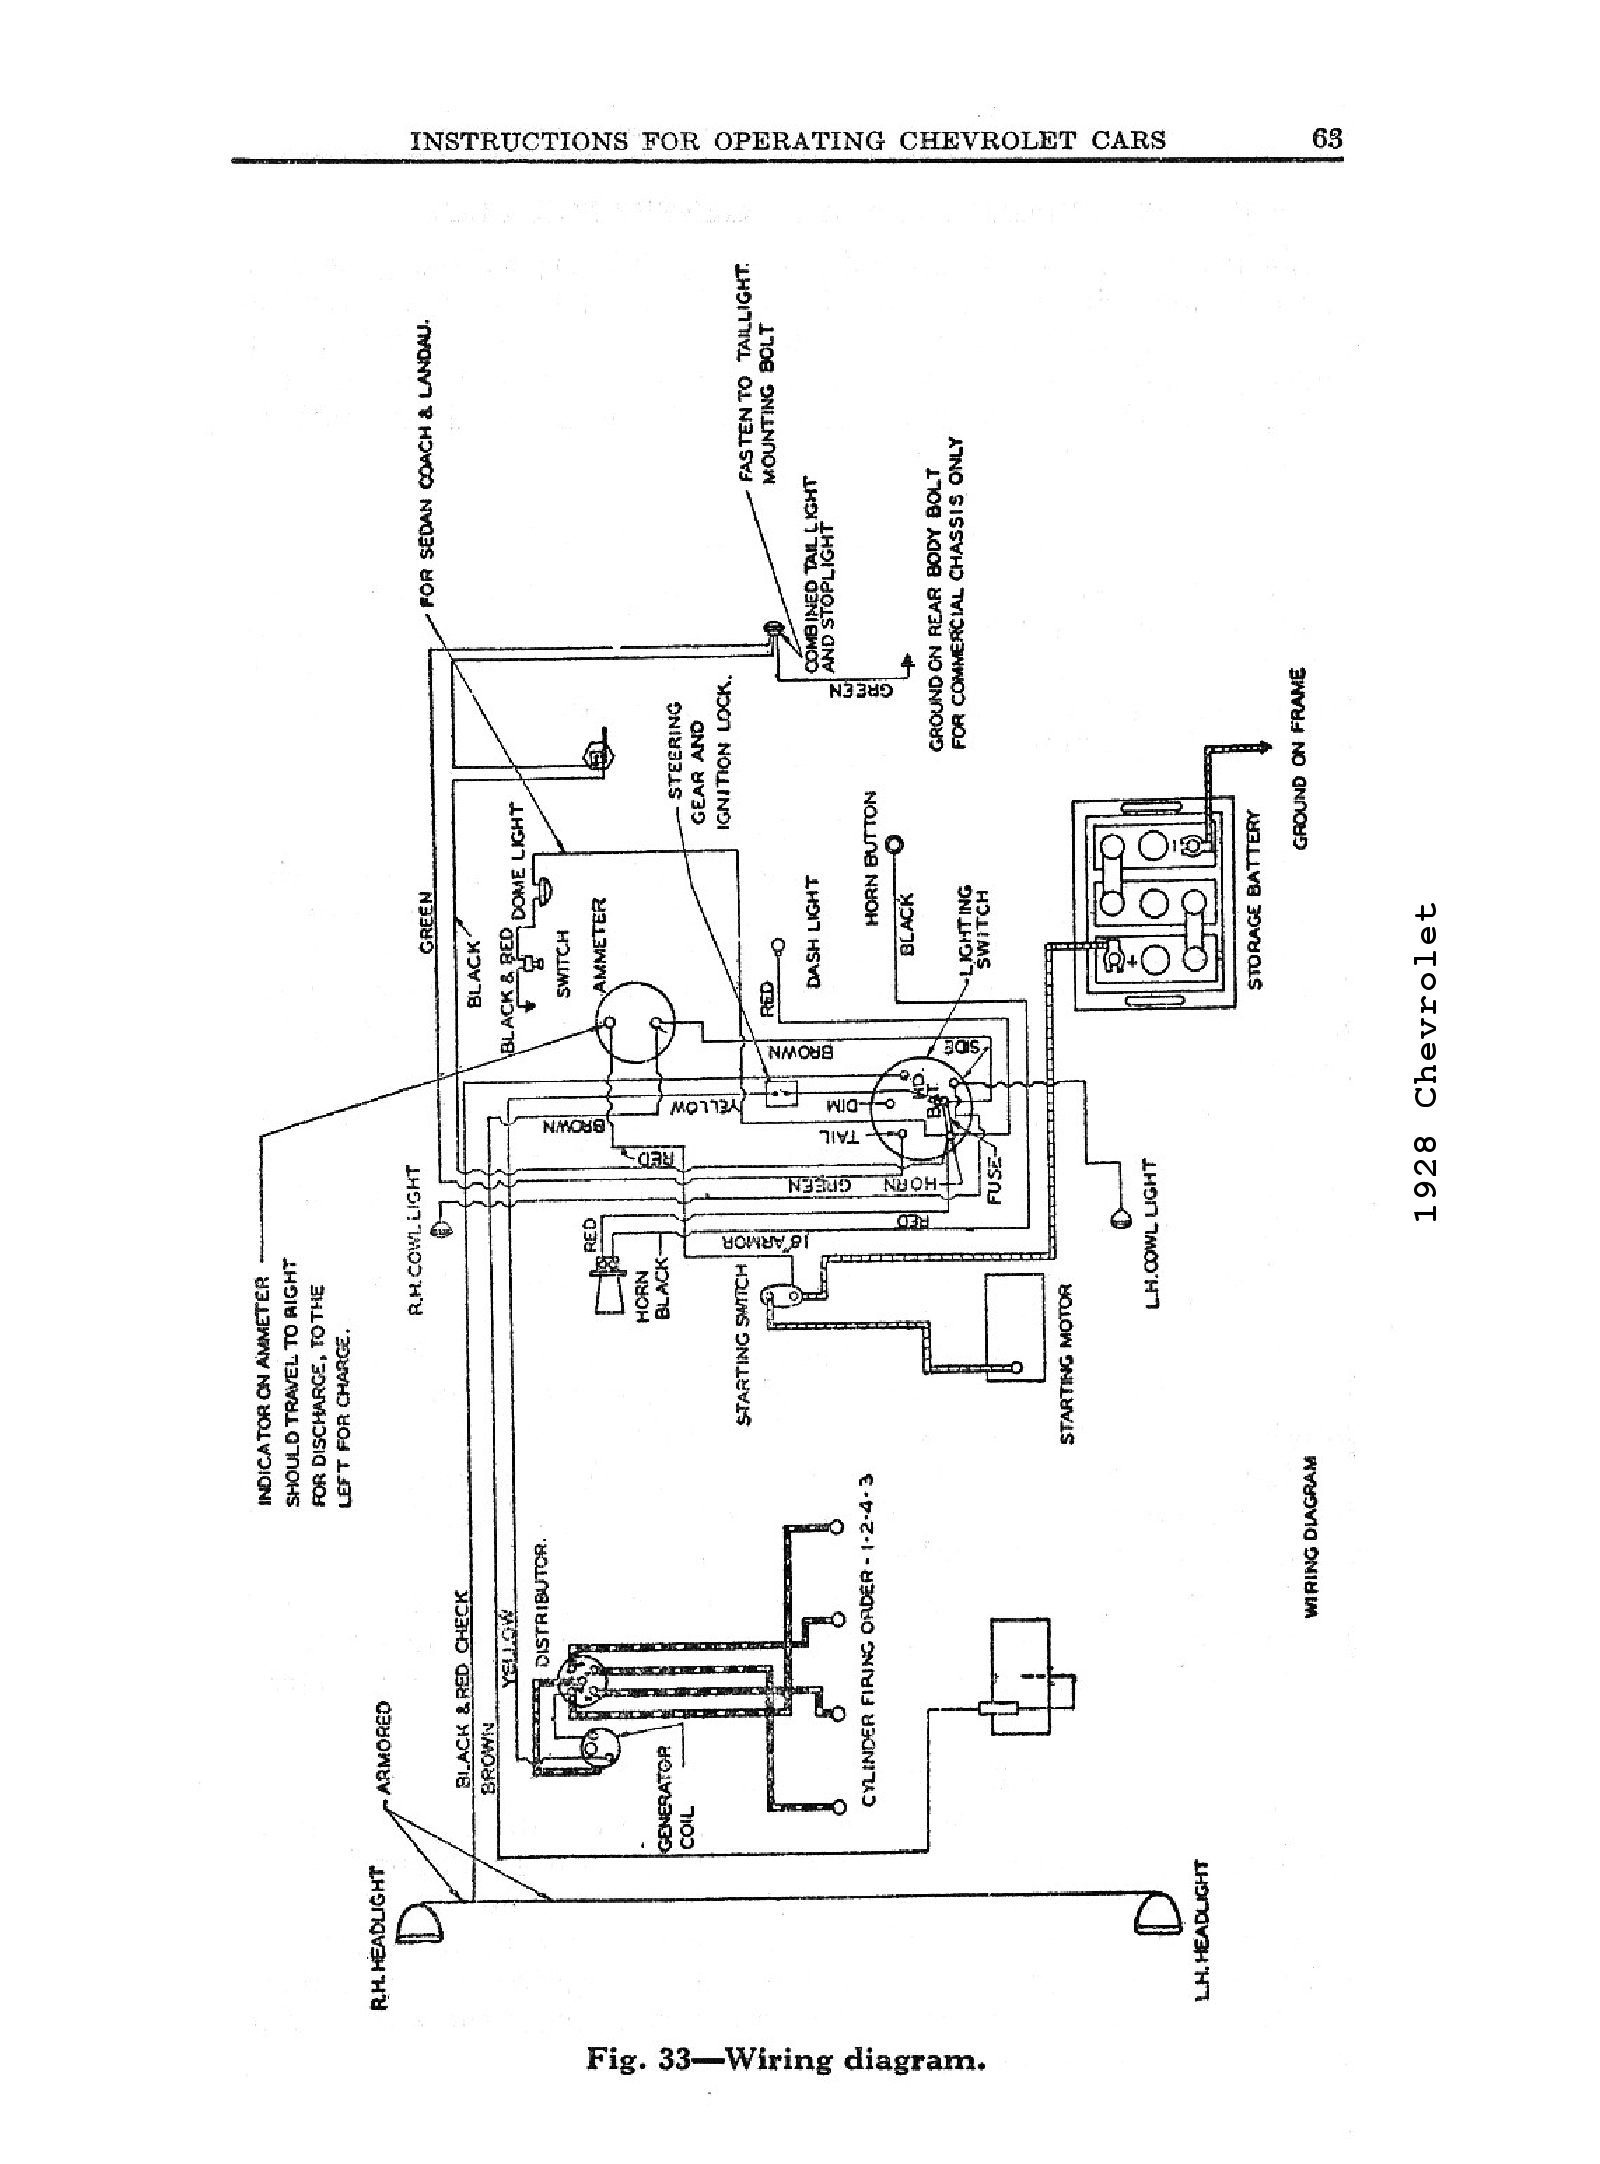 Diagram Shift Solenoid Chevy Trucks